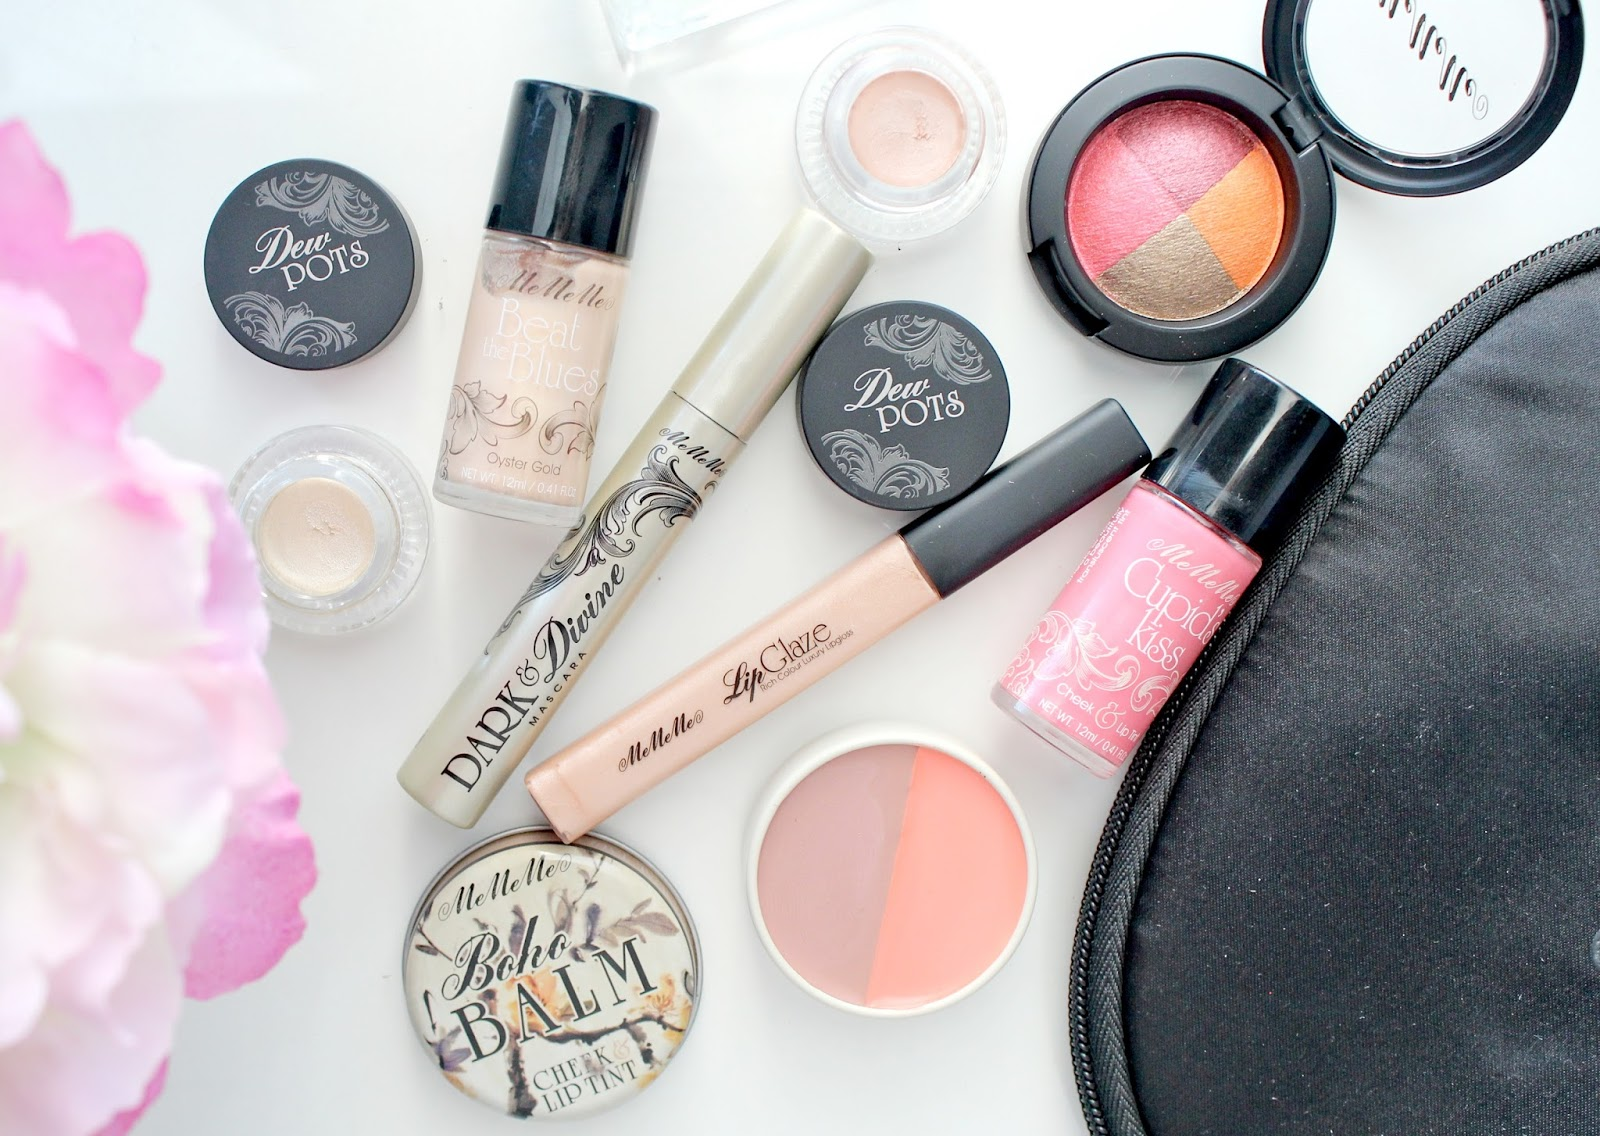 Me Me Me Cosmetics, Me Me Me Makeup, Me Me Me Makeup Review